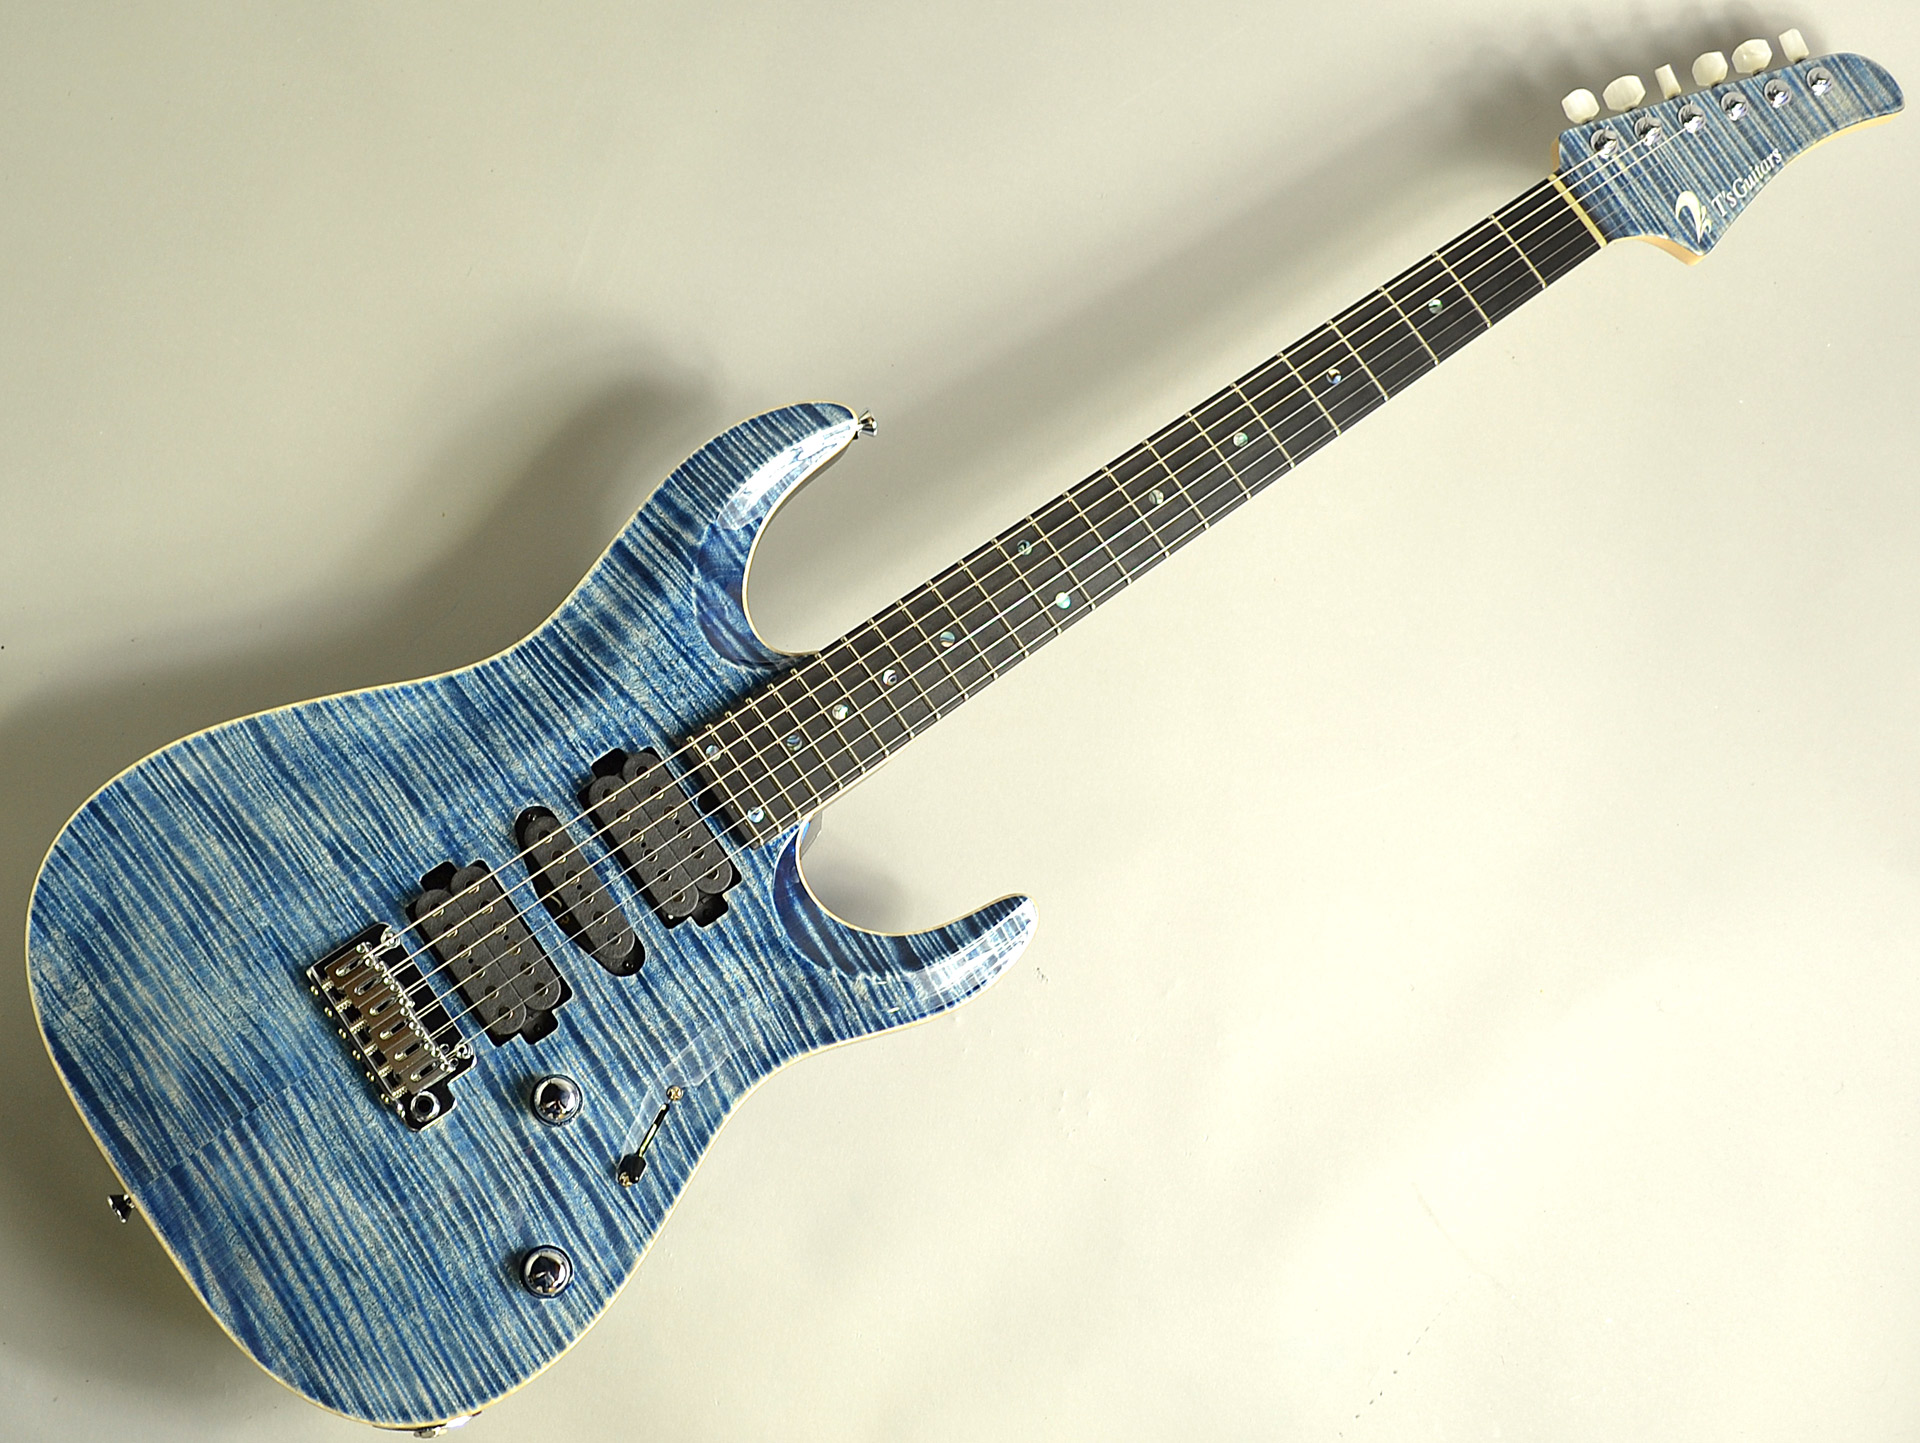 DST-Pro24 Carvedtop 5A FlameMapleの全体画像